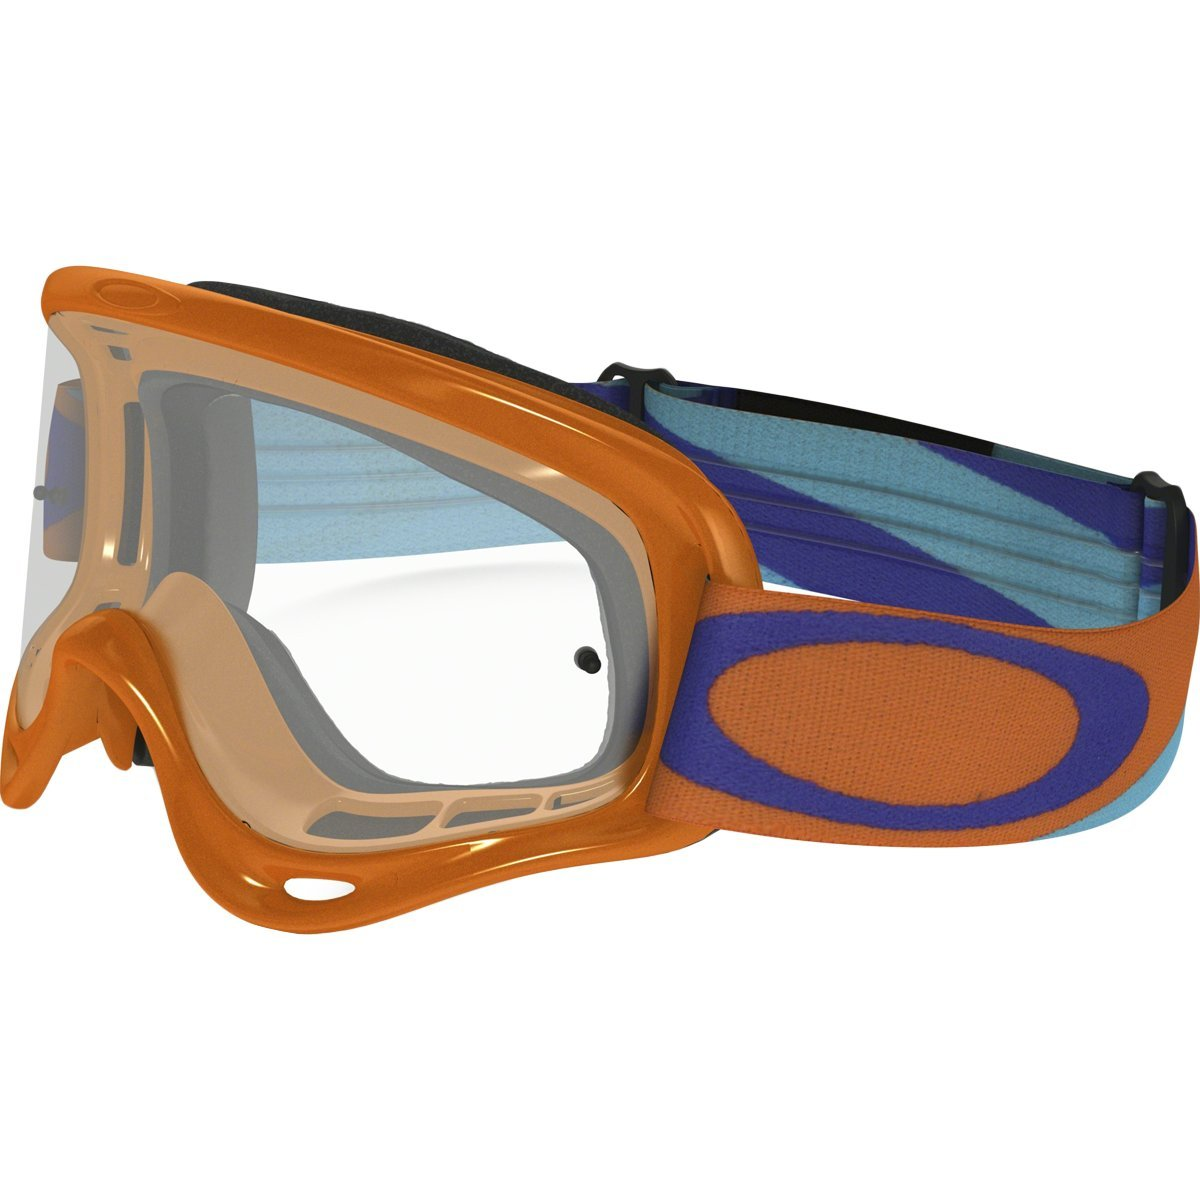 Oakley XS O MX Heritage Racer Adult Off-Road Motorcycle Goggles Eyewear - Orange/Clear / One Size Fits All